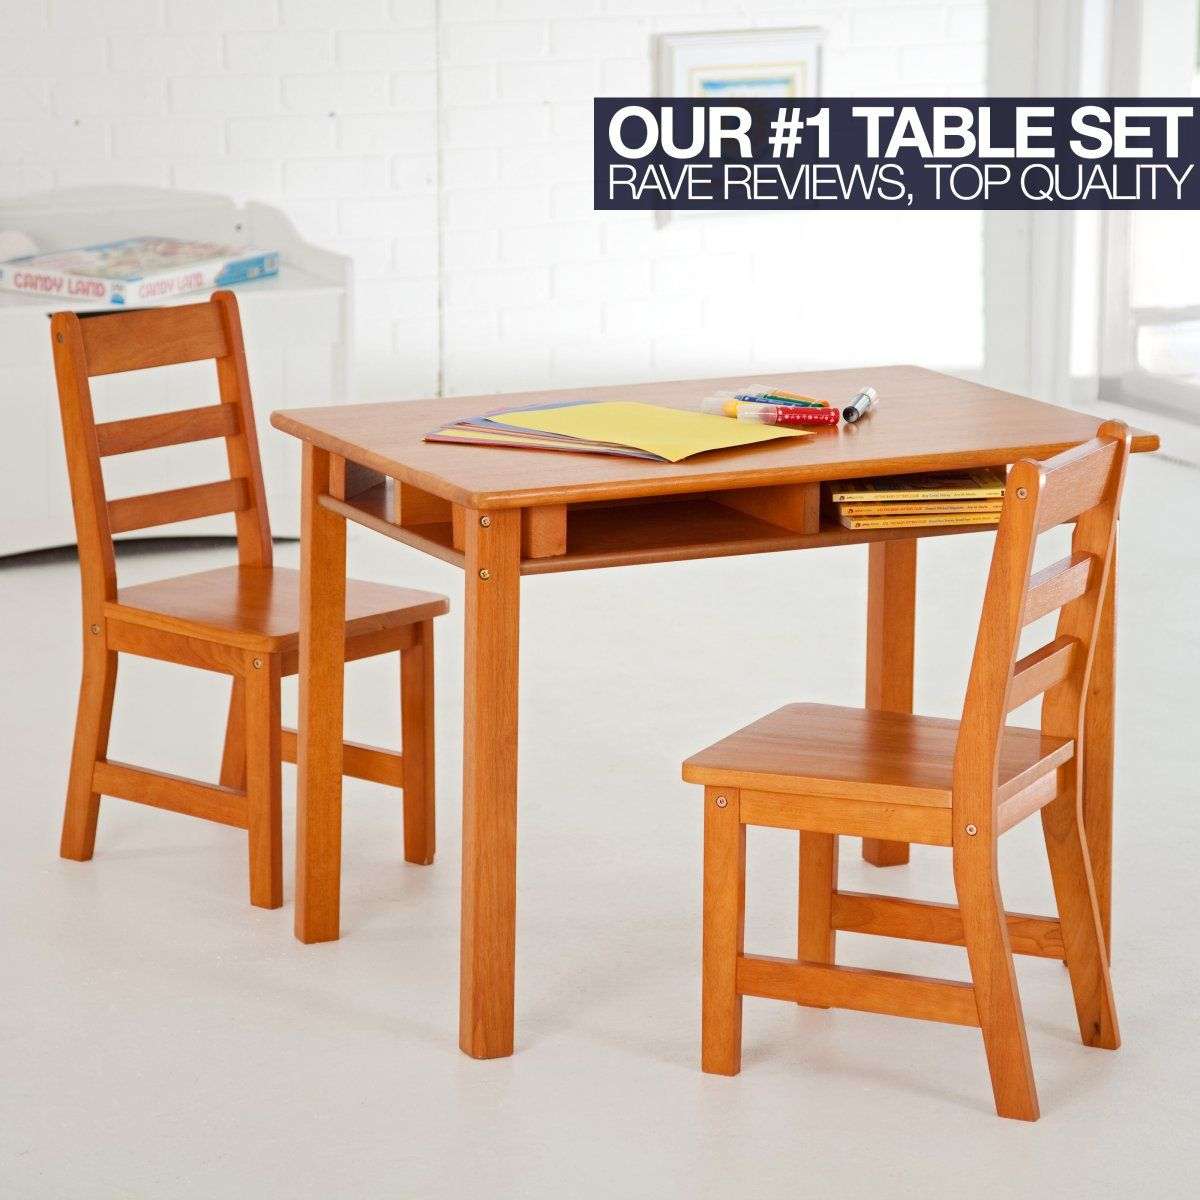 Ordinaire Lipper Childrens Rectangular Table And Chair Set   I Love This One. Itu0027s  From Childrenstablesandchairs